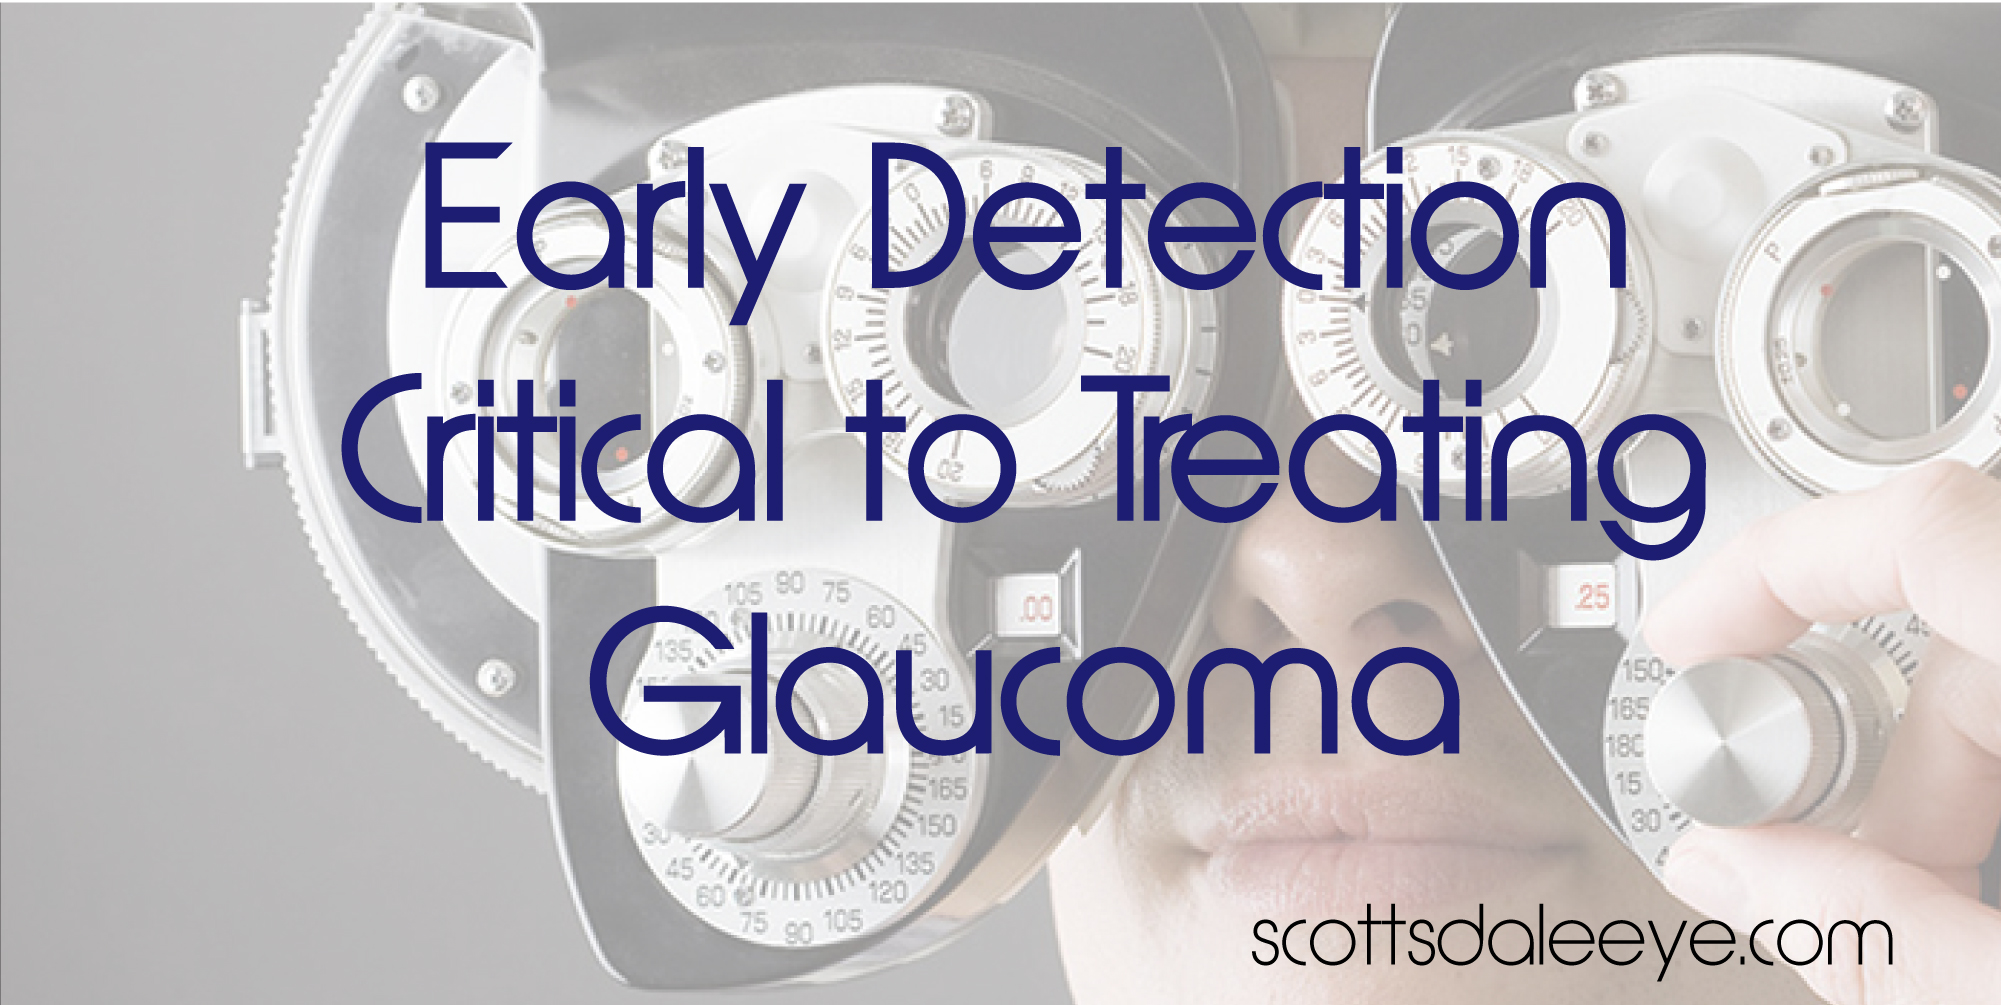 Early Detection Critical to Treating Glaucoma